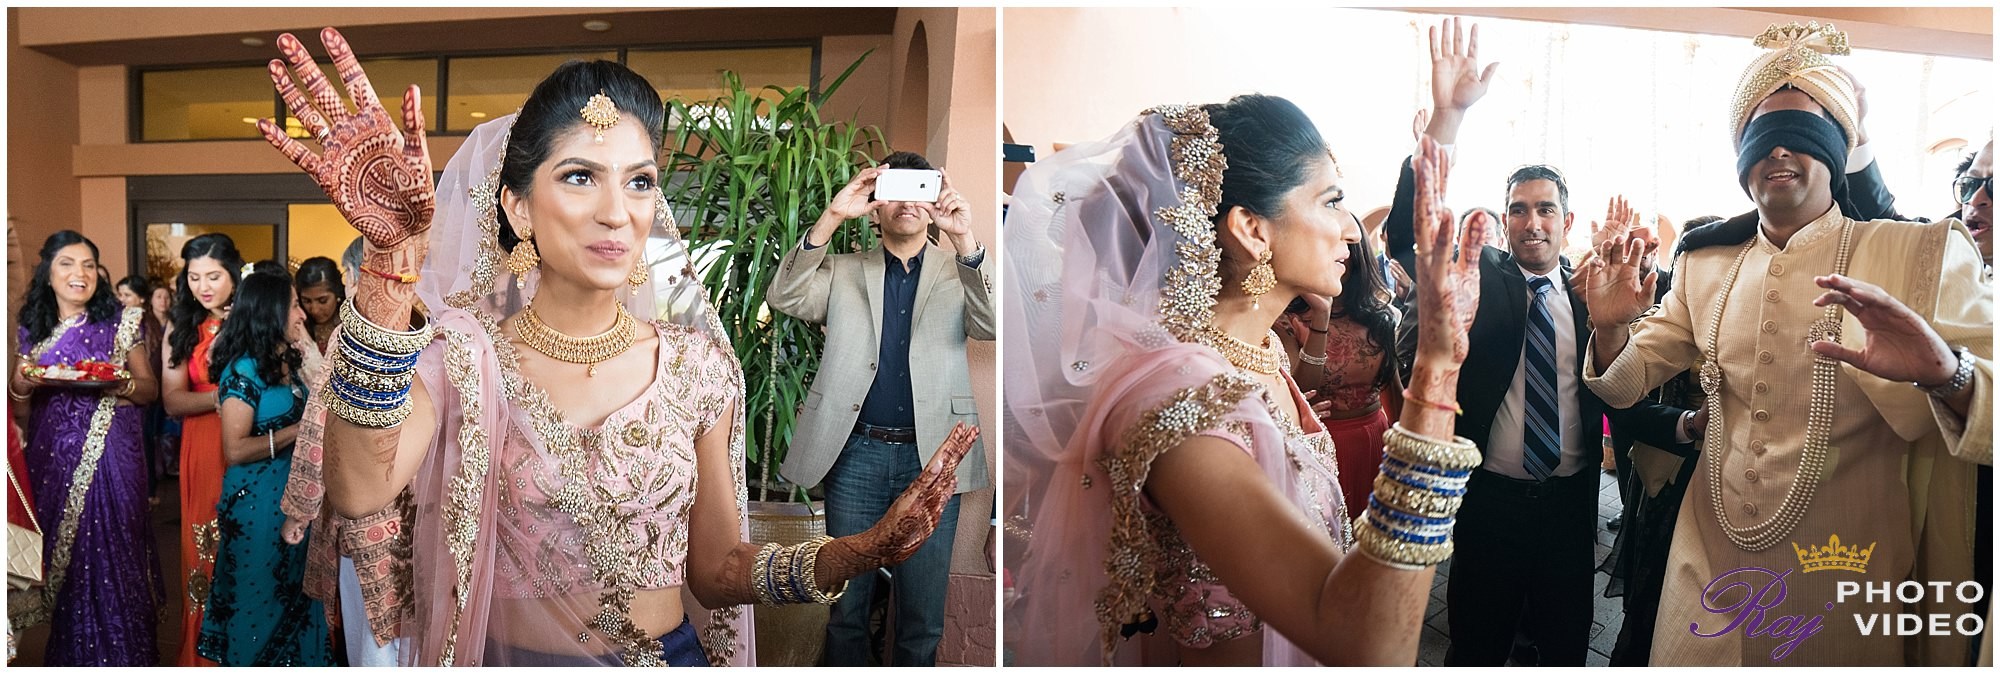 Scottsdale_Marriott_at_McDowell_Mountains_Arizona_Indian_Wedding_Sapna_Shyam-43.jpg